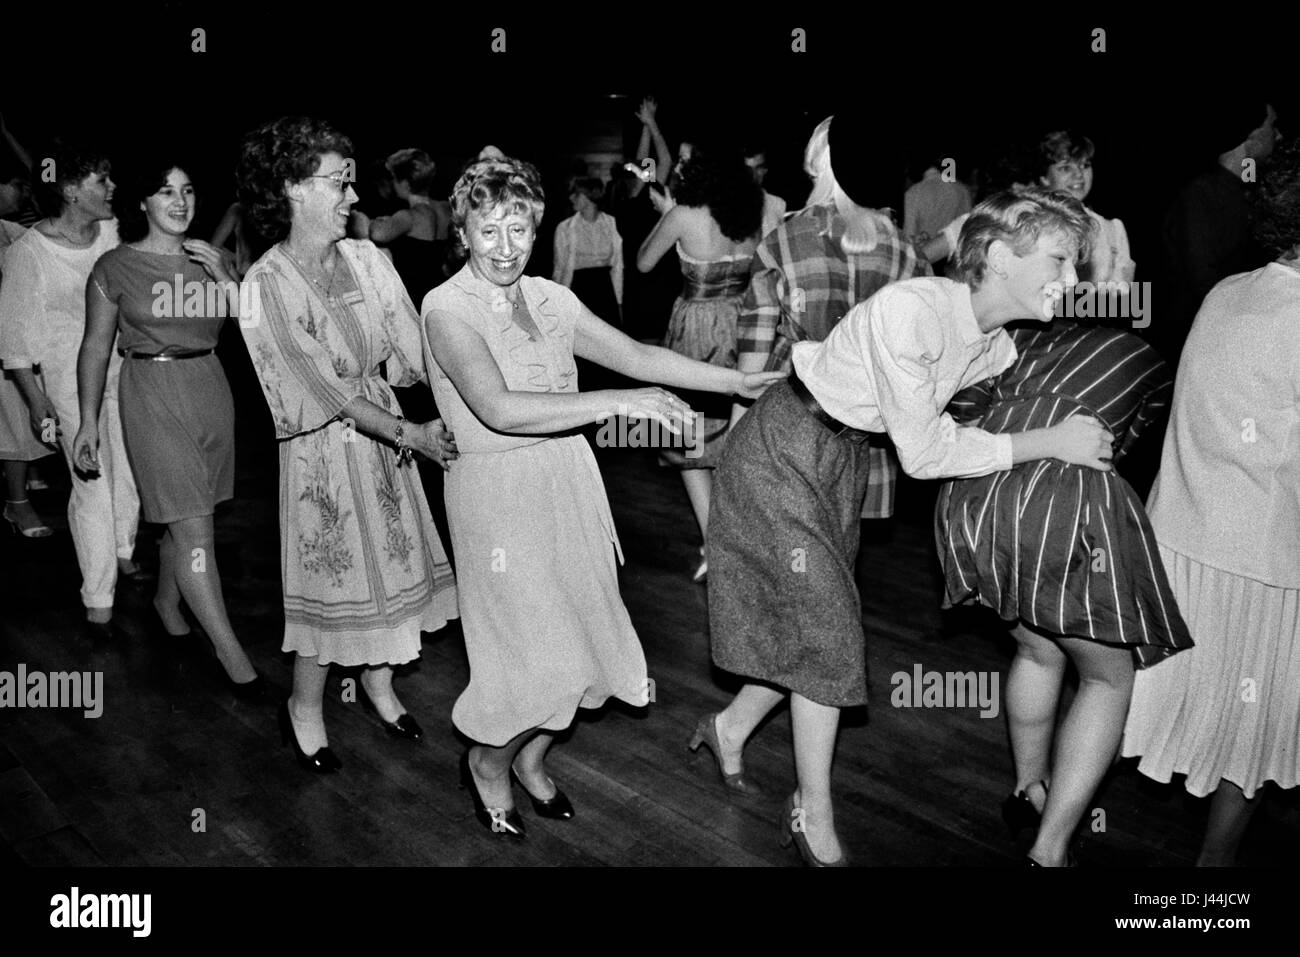 Conga Line all only girls women dancing together 1980s London Uk ballroom private hen party. HOMER SYKES - Stock Image